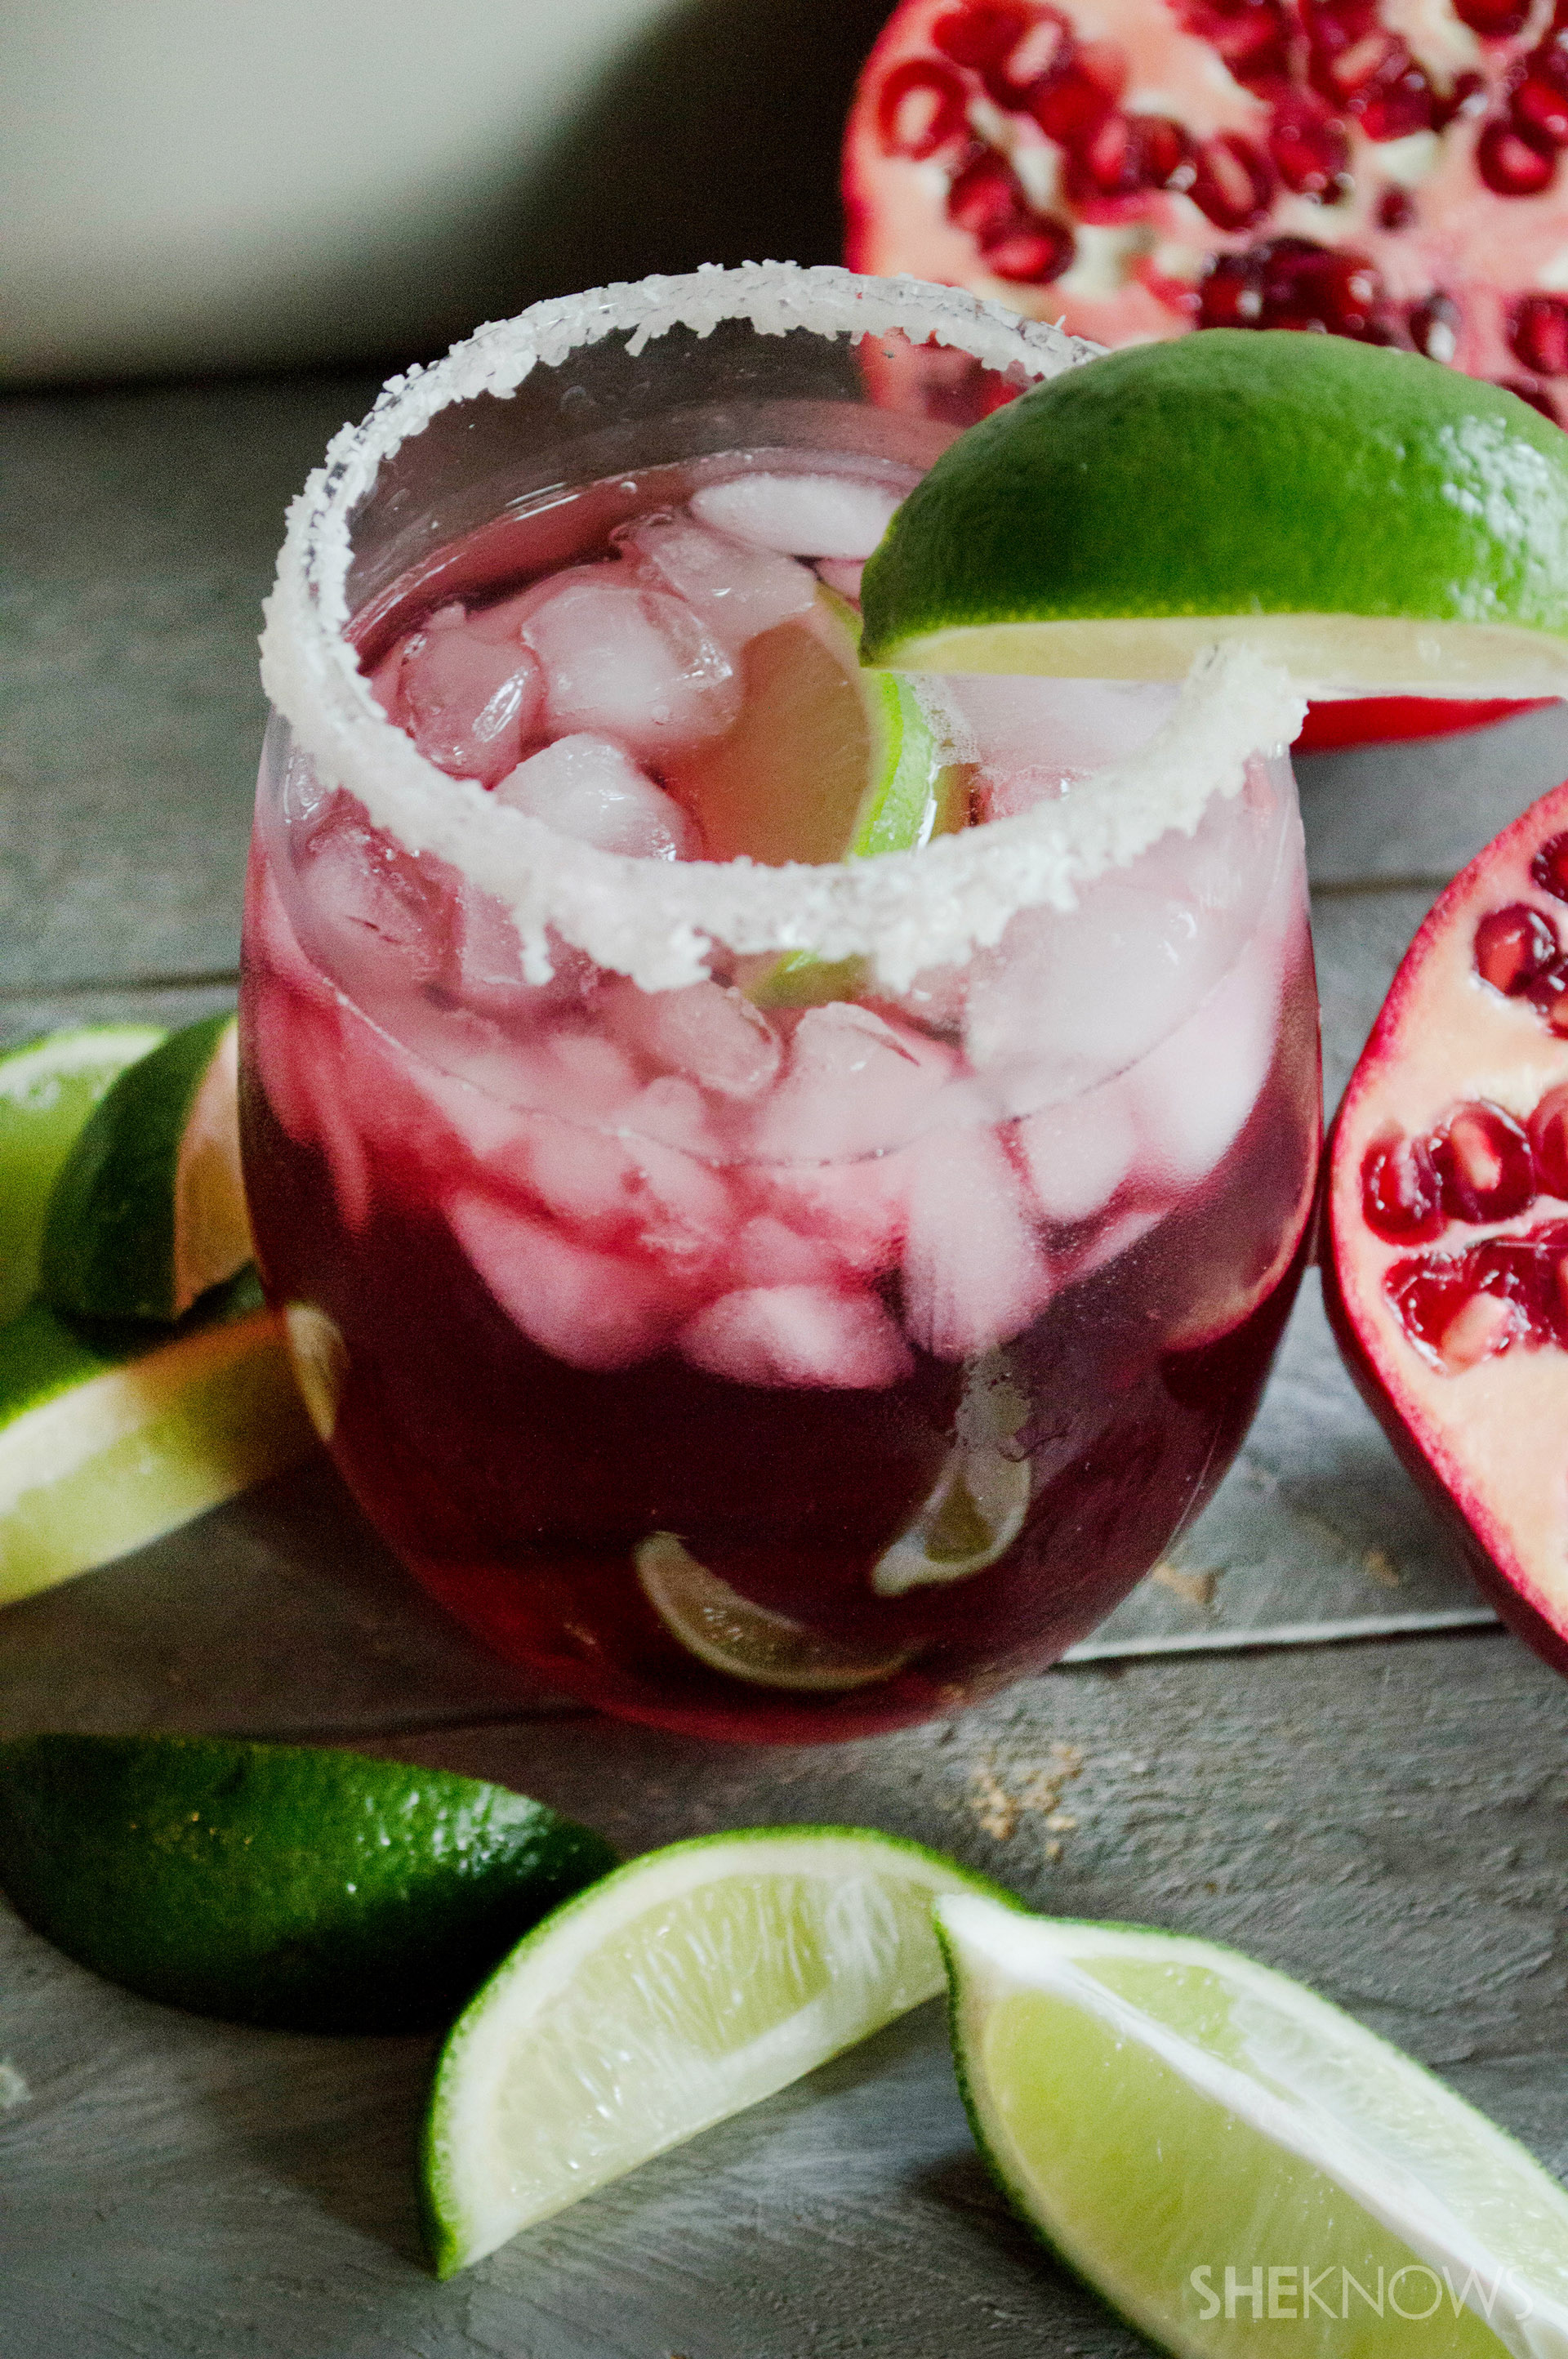 Pomegranate-passion fruit margaritas are the perfect cocktail for fall